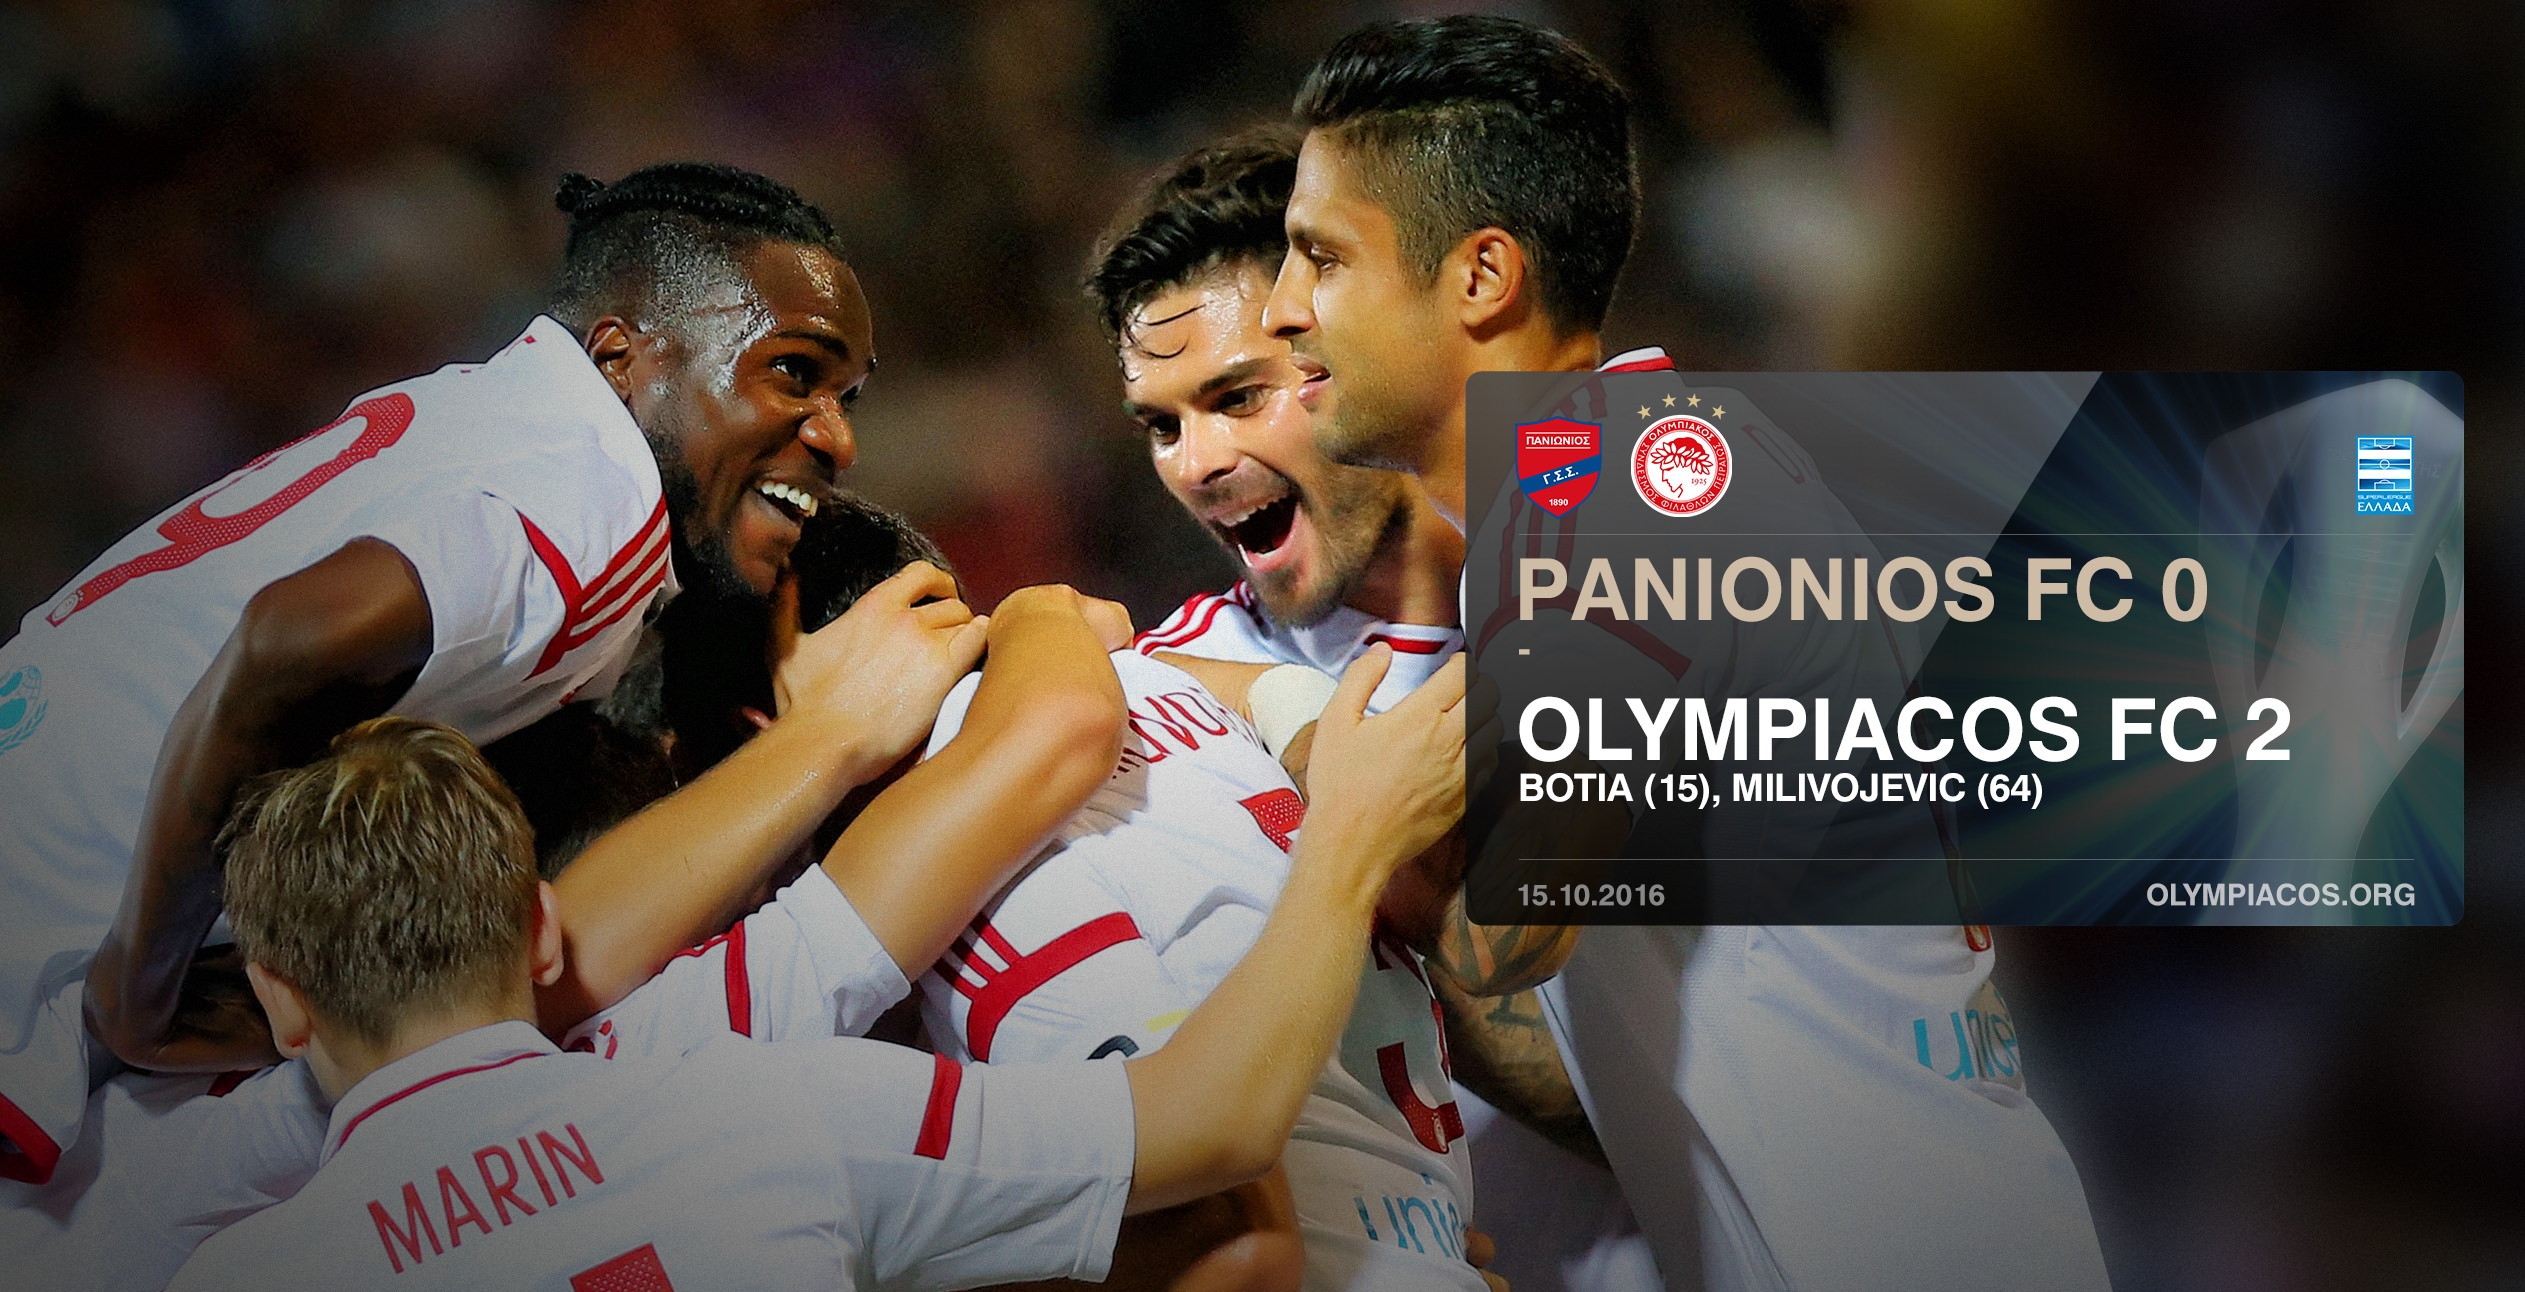 2 spectacular goals earns Olympiacos a 2-0 win to Panionios